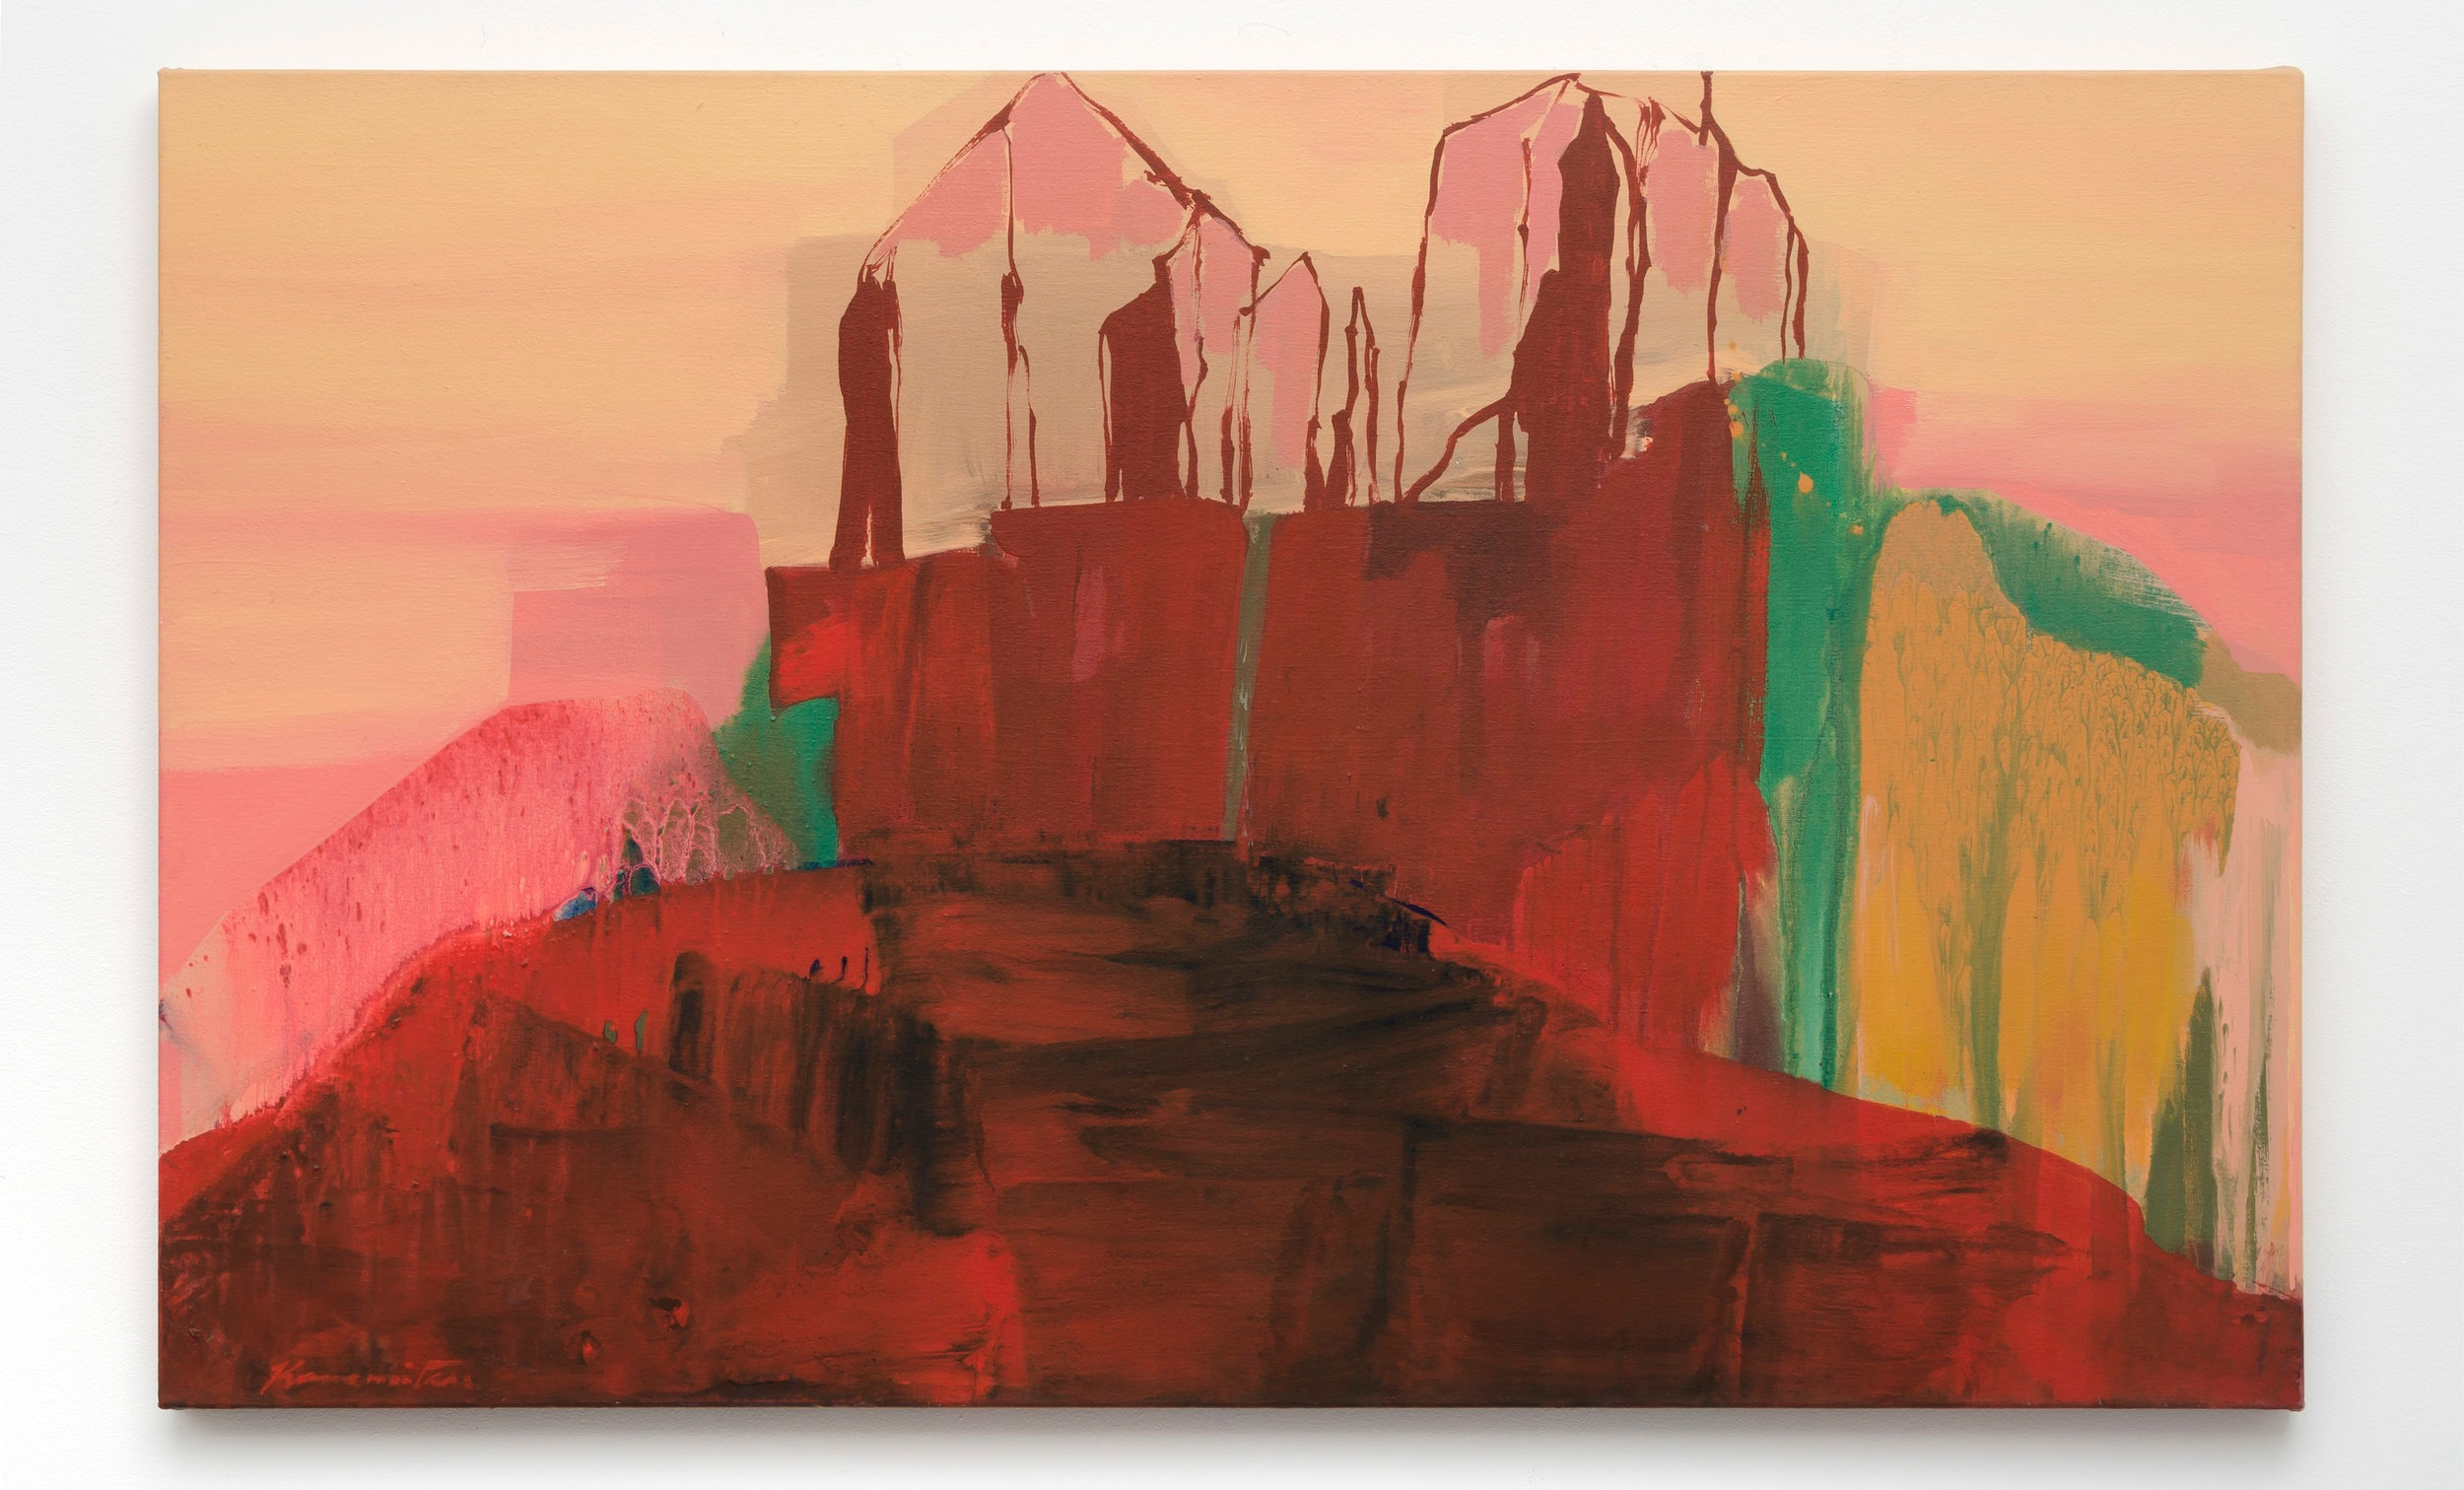 Sunset – Desert   1989  acrylic on canvas  30.25 x 48.25 inches, 76.8 x 122.6 centimeters